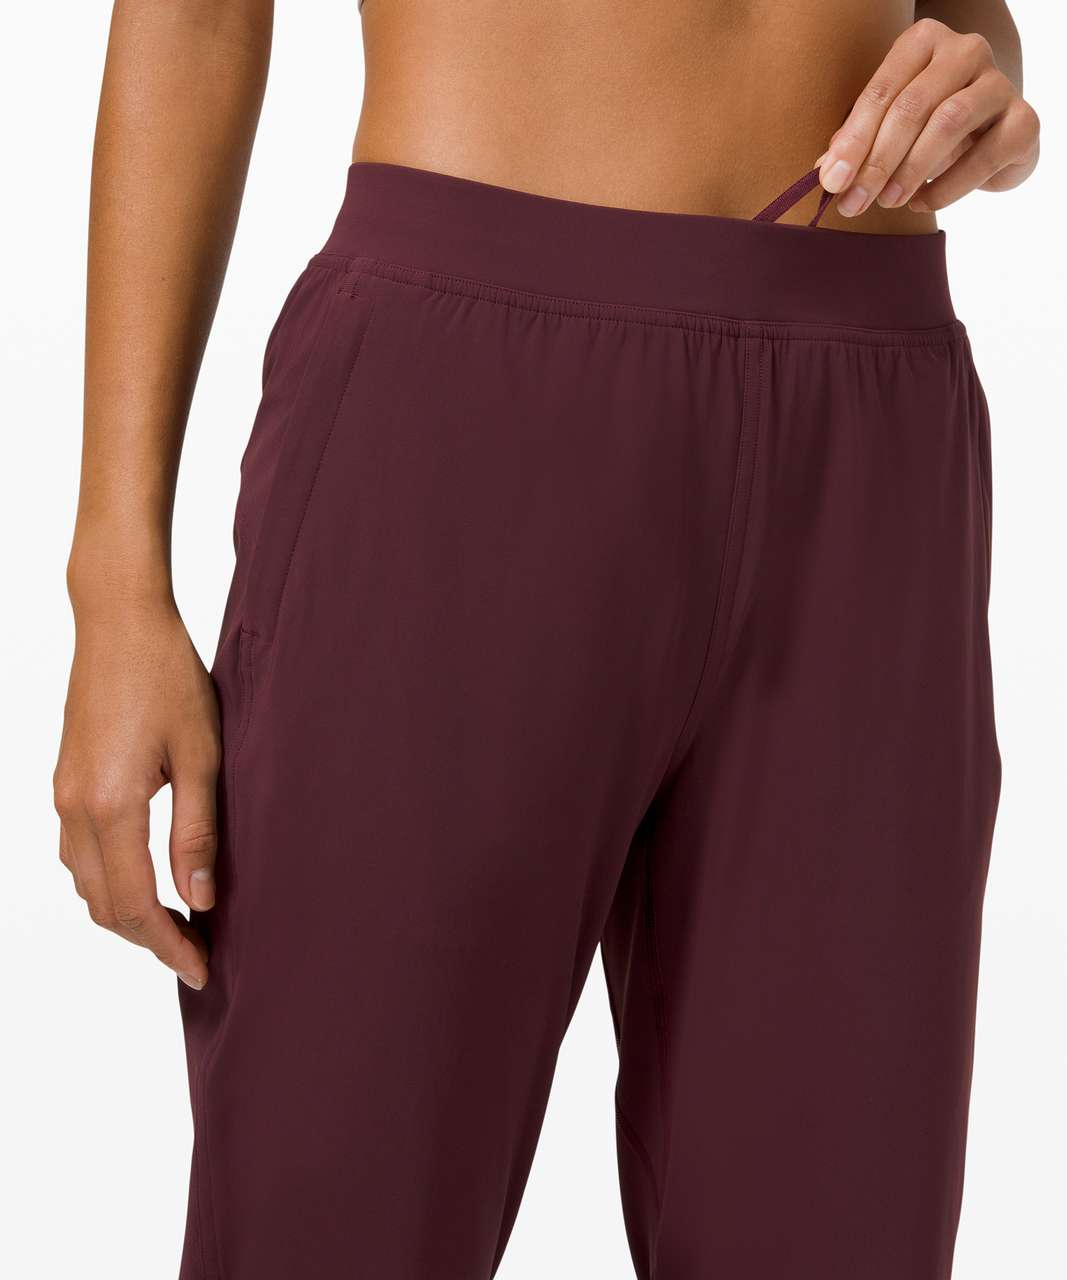 Lululemon Adapted State Jogger - Cassis